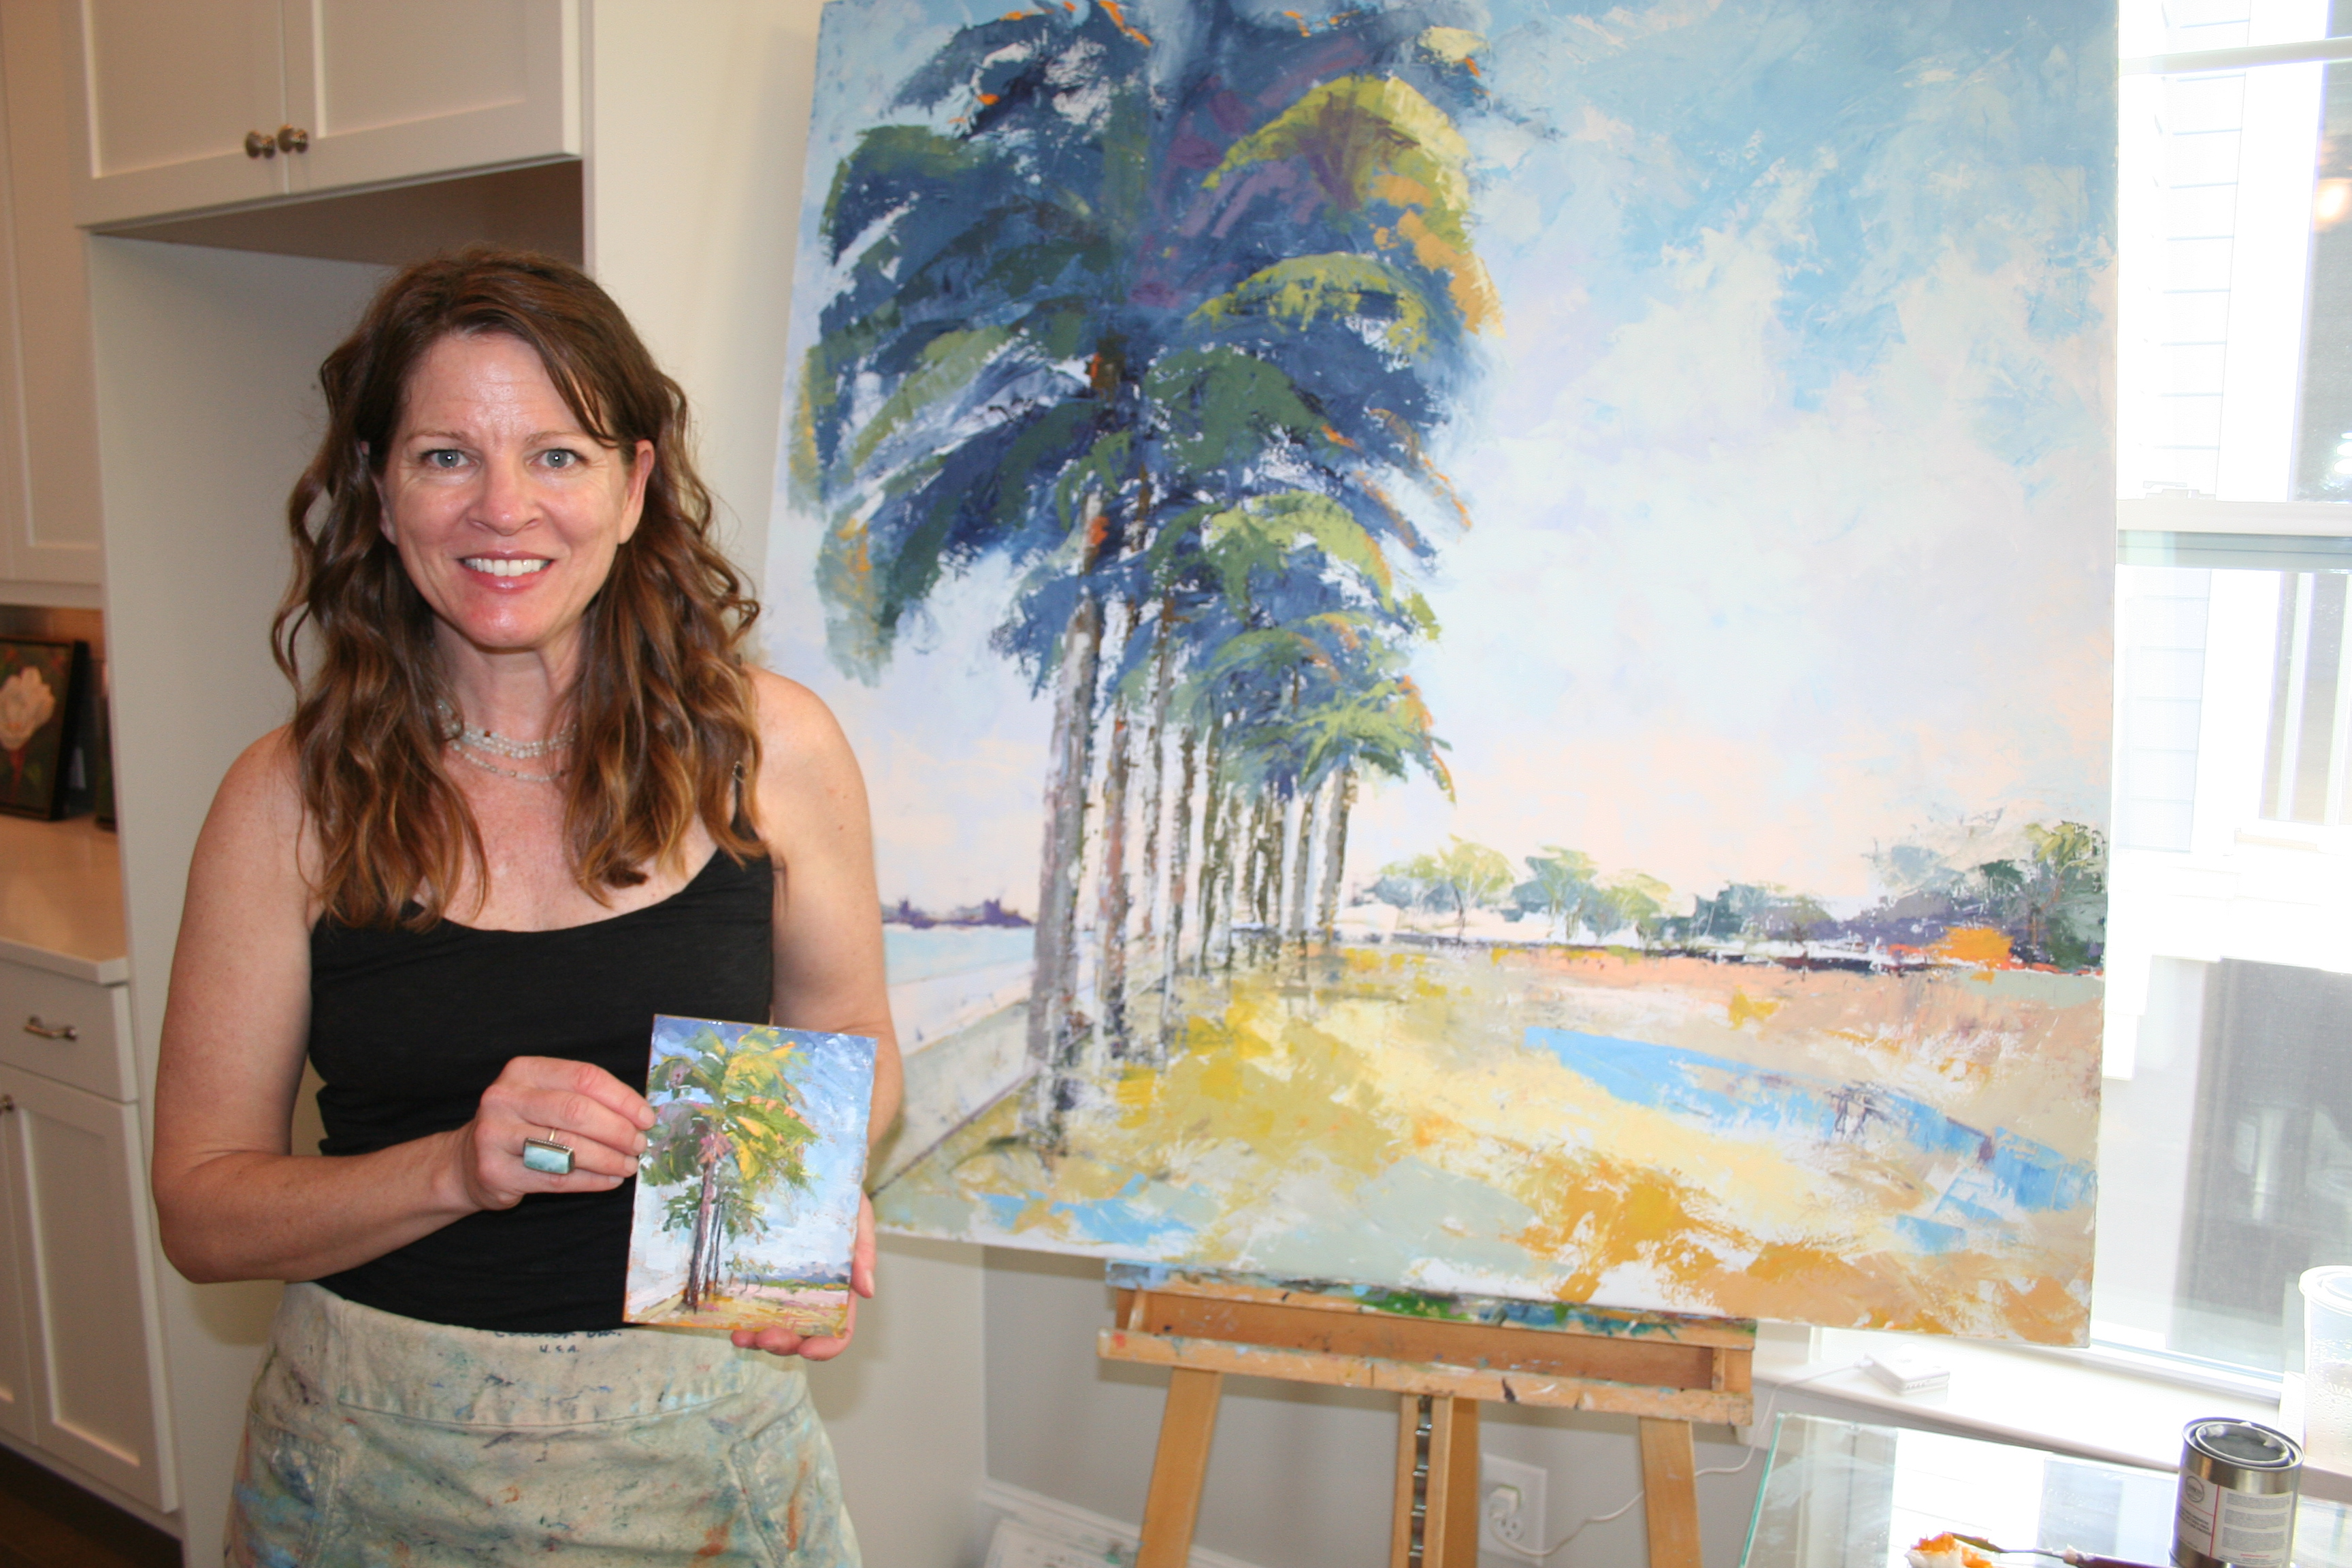 Daniel Island resident Heather Jones (pictured here) organized the pop-up art show and studio event at the open house on April 14. Jones, who is also an artist, worked on finishing this large painting during the festivities!